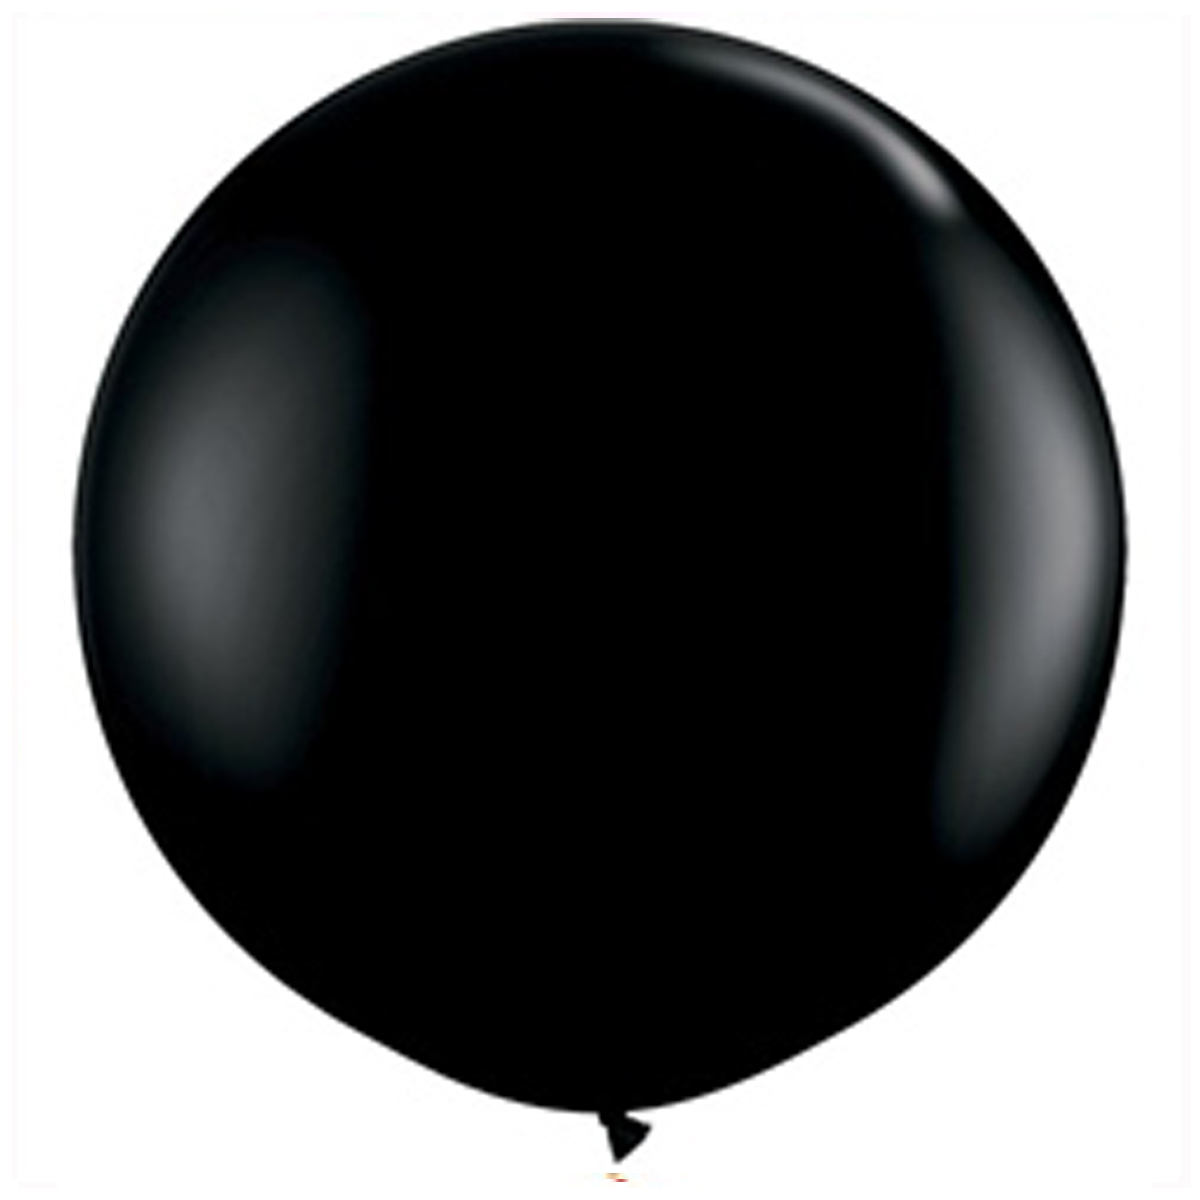 Five Baby Gender reveal confetti balloon. 24' Black balloons with confetti.